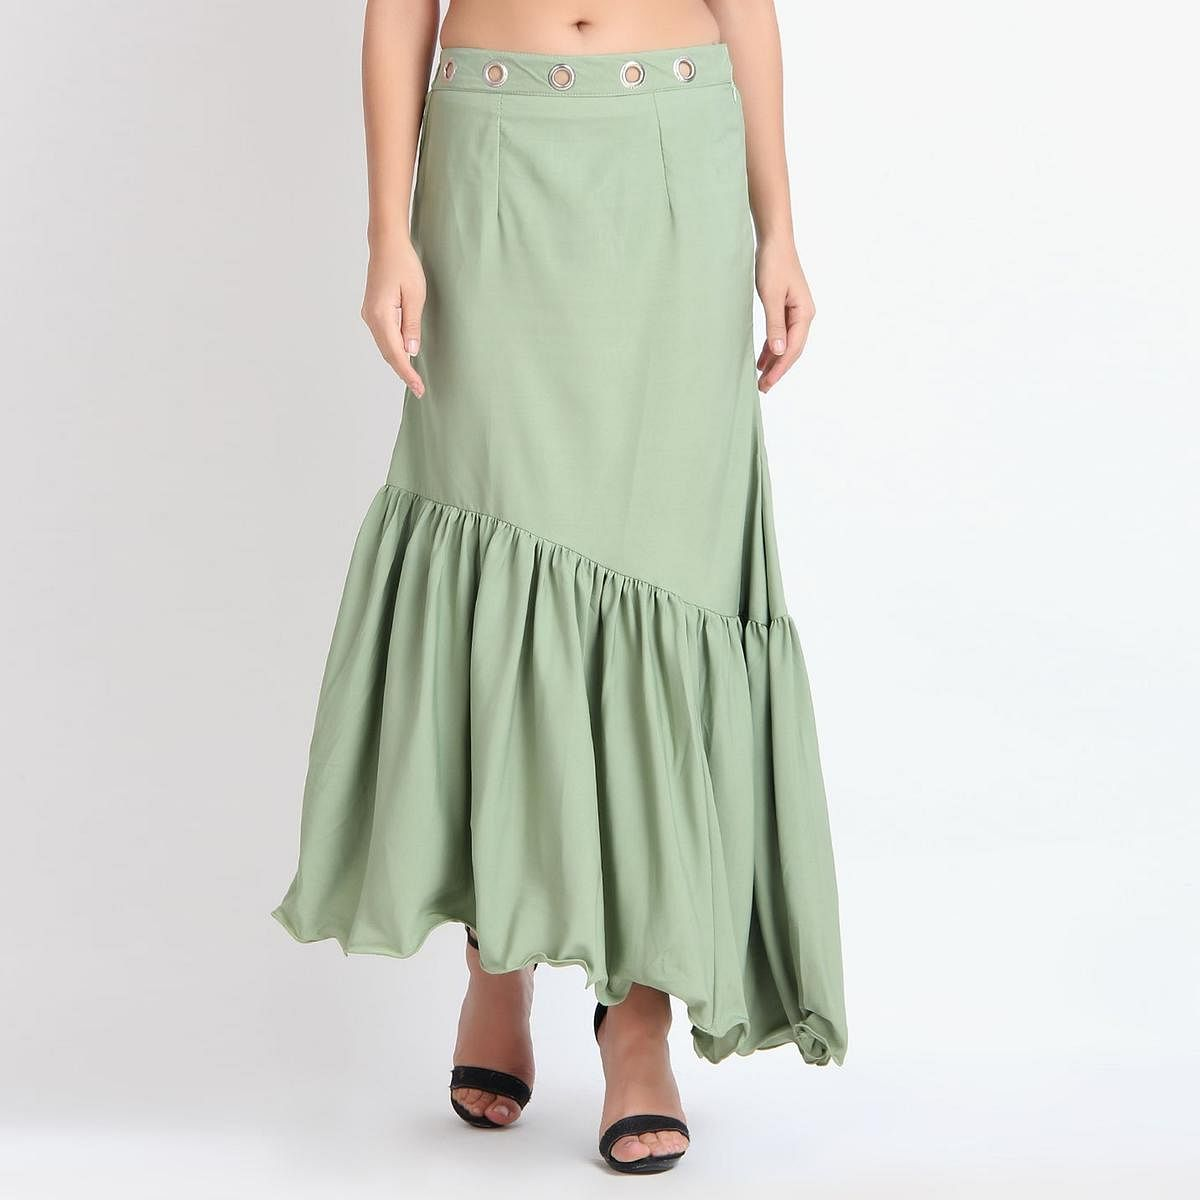 Appealing Light Green Colored Partywear Crepe Skirt